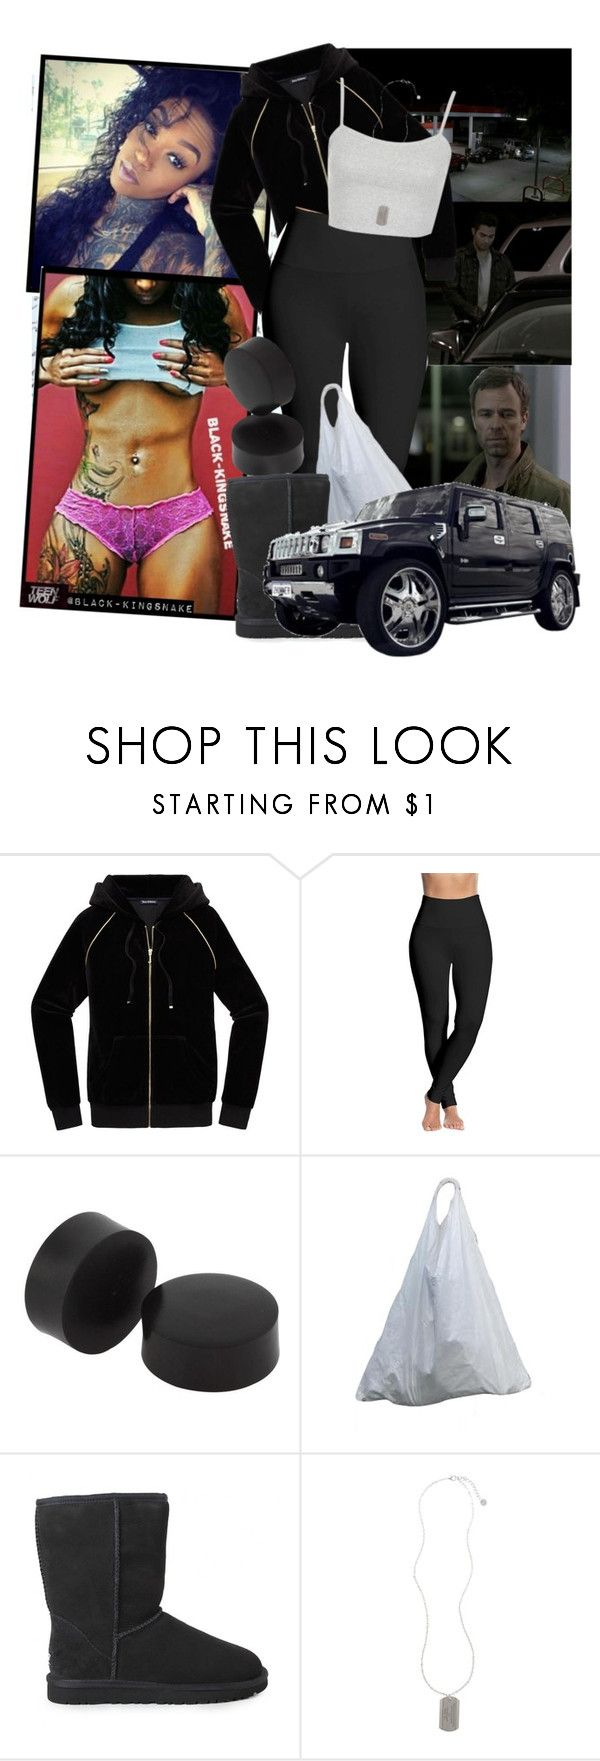 """(TW) Pack Mentality ❌ READ DESCRIPTION"" by black-kingsnake ❤ liked on Polyvore featuring Juicy Couture, Lyssé Leggings, UGG Australia, Topshop and Armani Exchange"